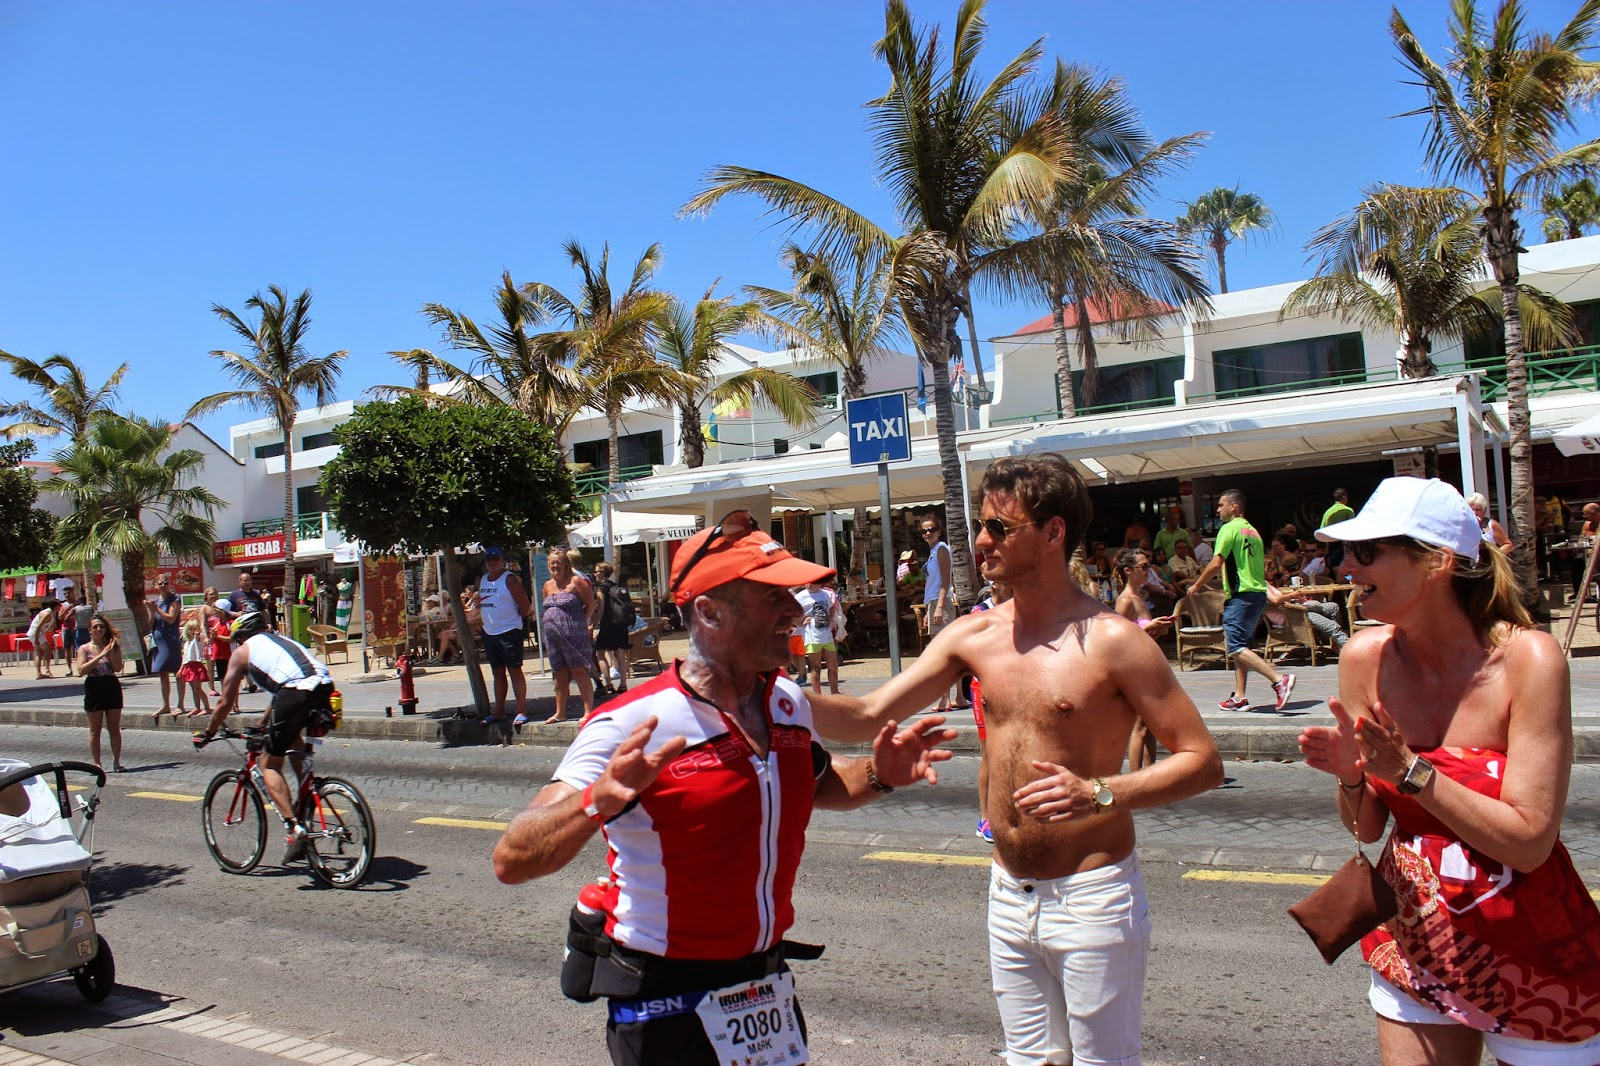 Ironman Lanzarote, Fitness, Lifestyle, Holiday, Lanzarote, triathlon, canary islands, May 2014, supports, sport, that guy luke, blog, sport blog, 2014, spain, blogger, swim, bike, run